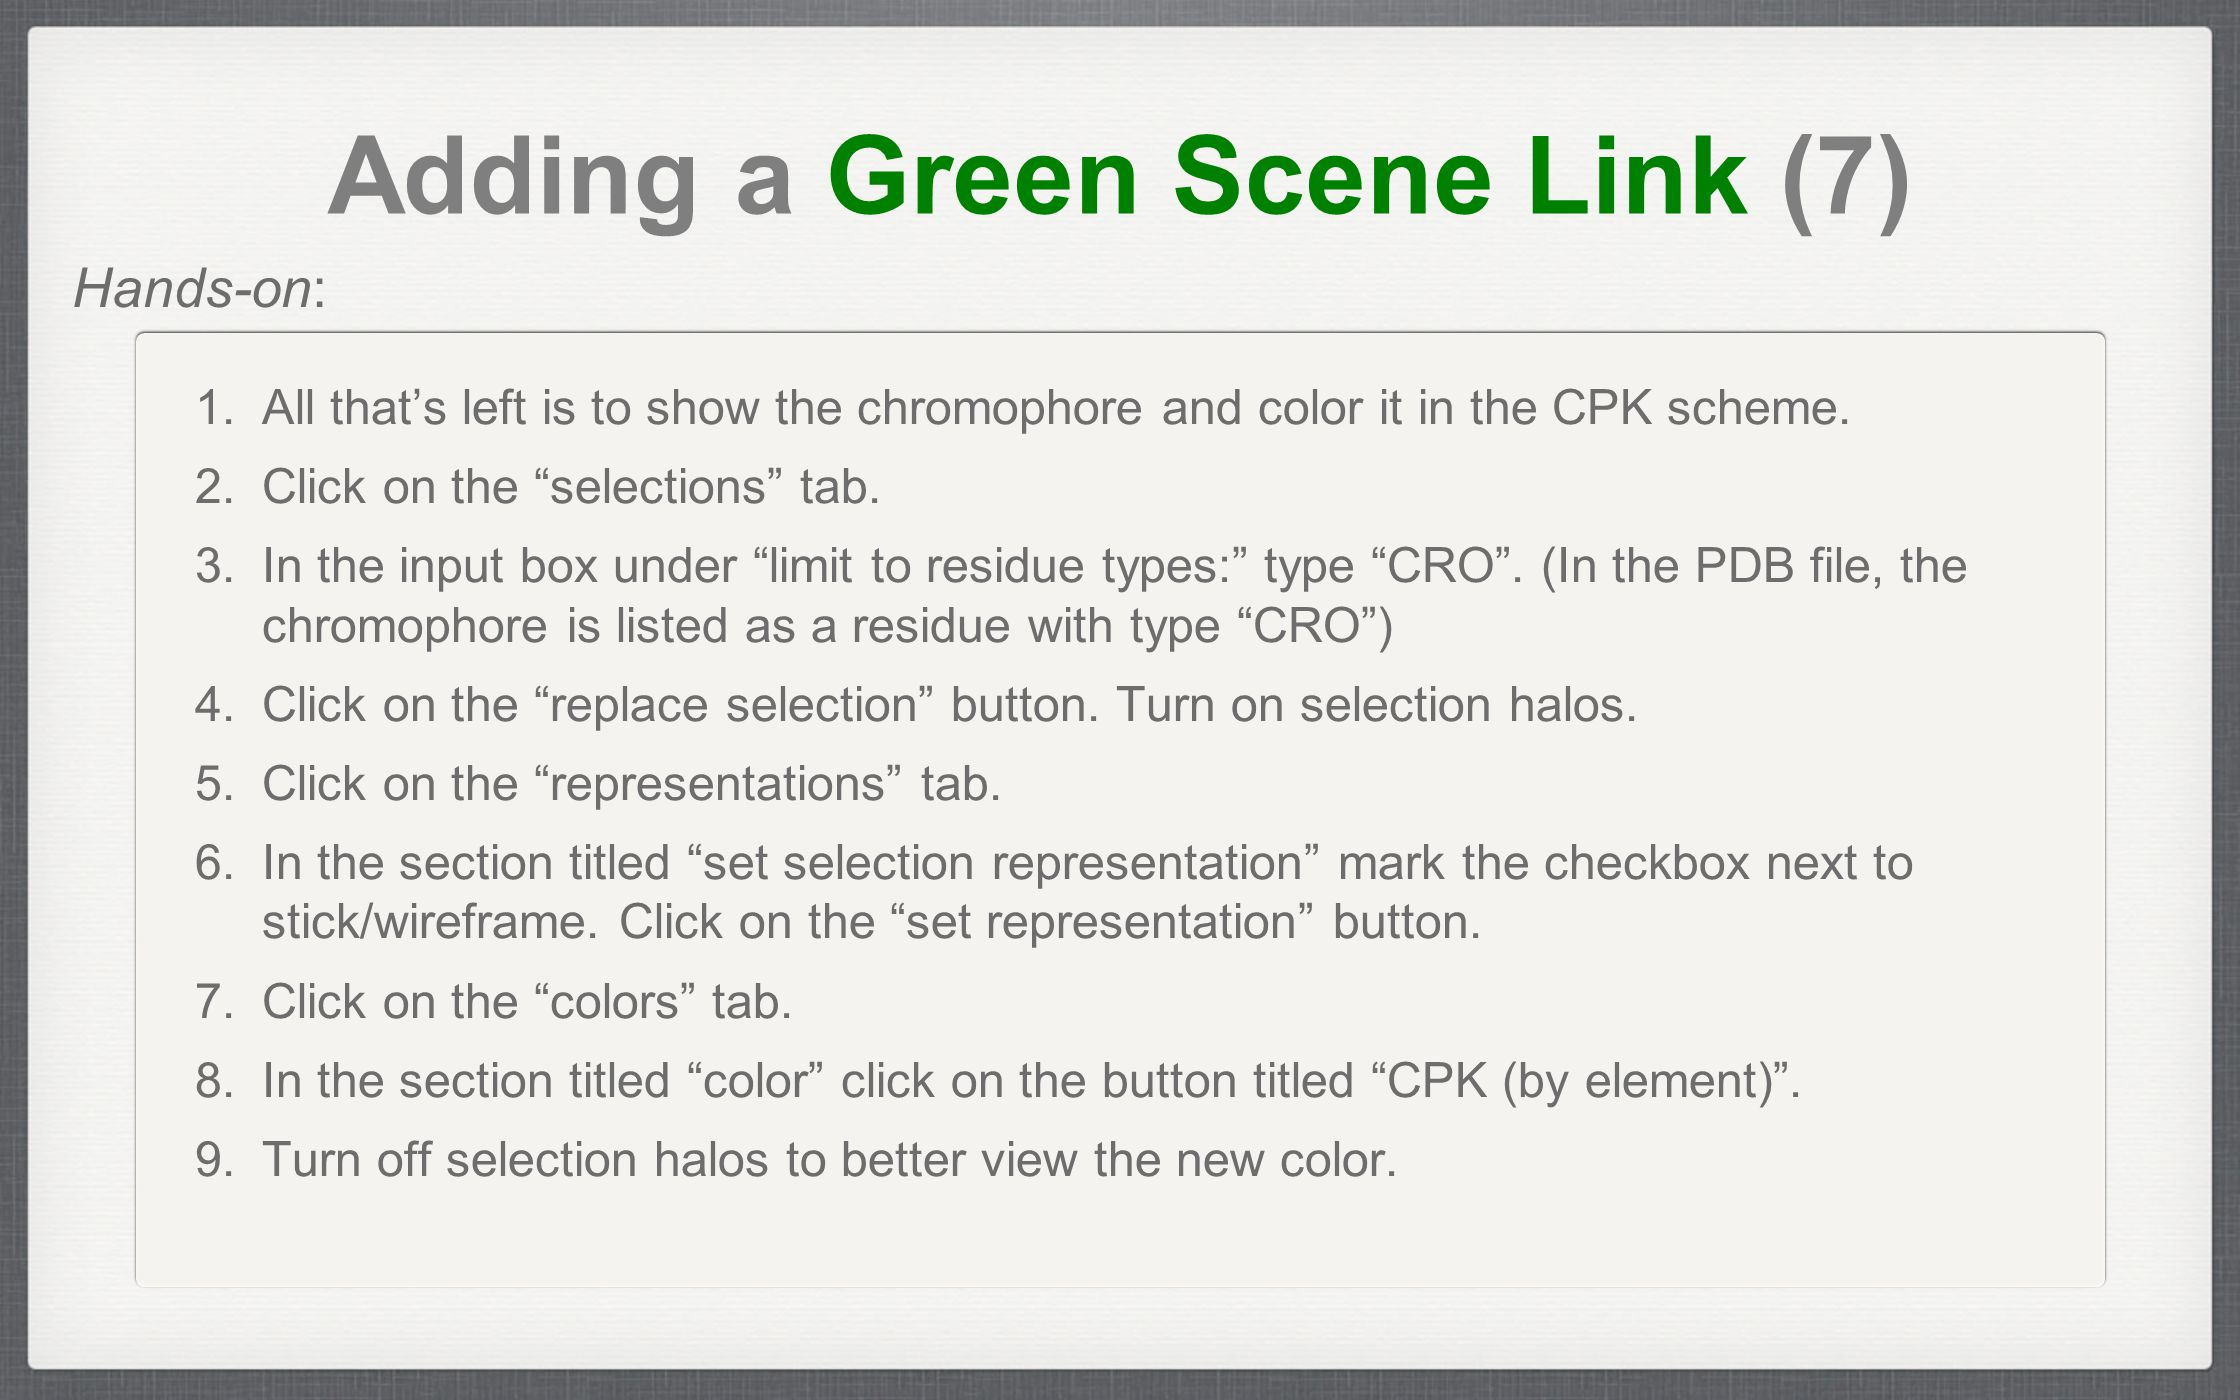 Adding a Green Scene Link (7) 1.